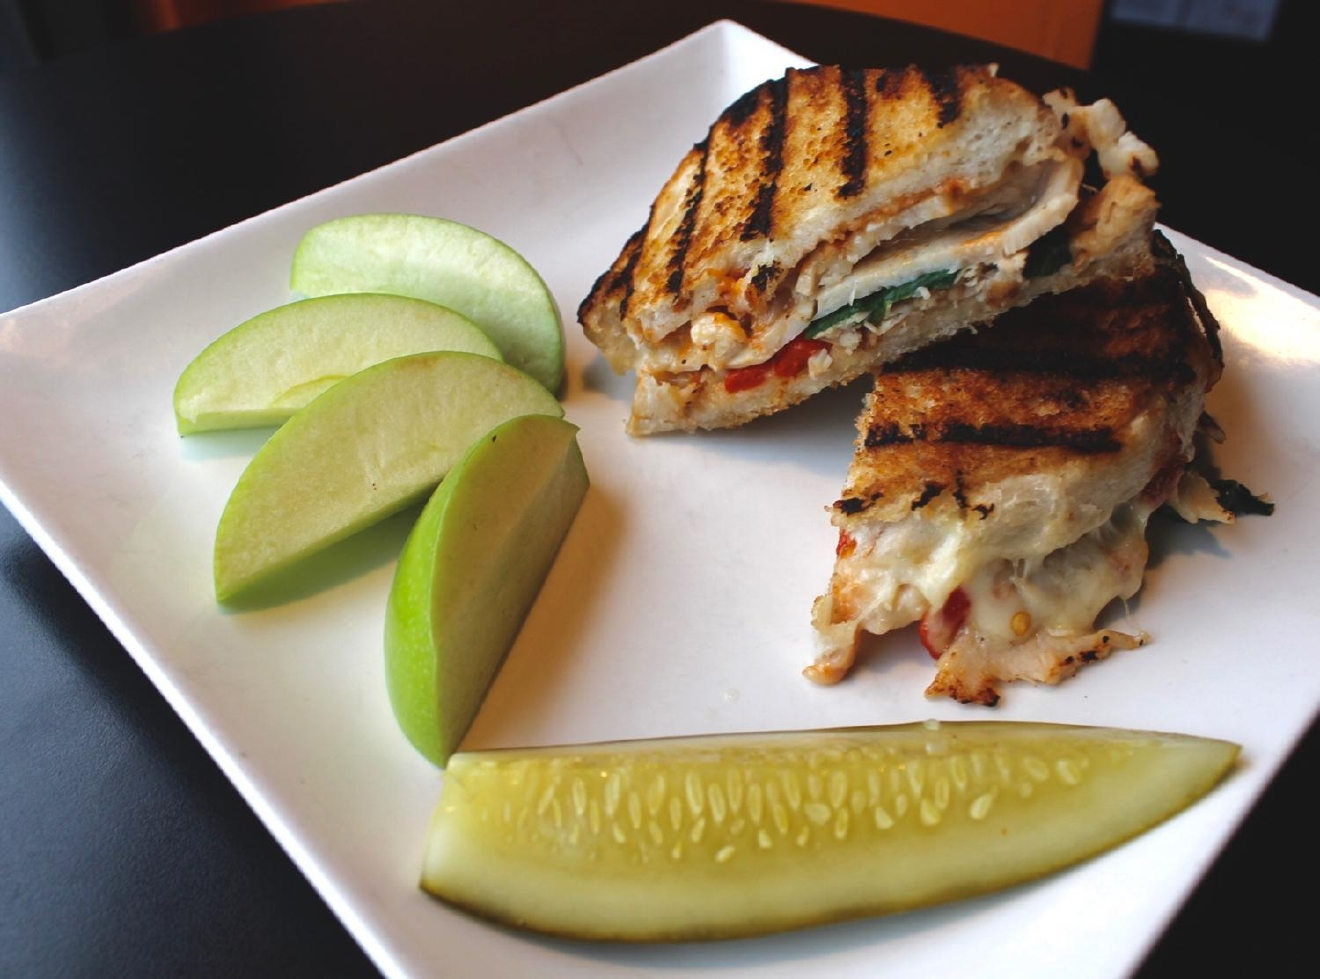 Turkey Panini : batard, bacon, roasted red peppers, spinach, smoked provolone, and sun-dried cherry chipotle aioli / Image: Rose Brewington // Published: 3.12.17